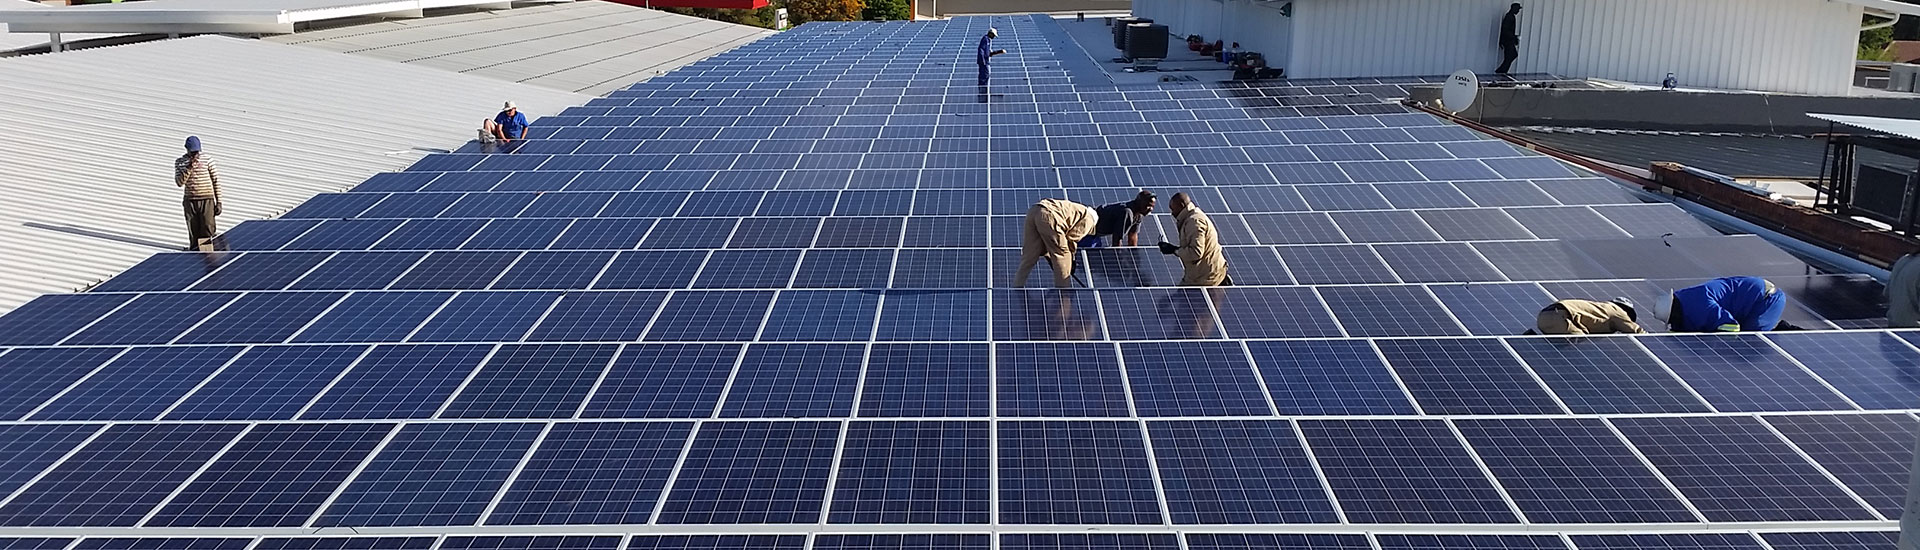 Eco Trades: Solar Power Systems for Shopping Malls (Project: Langenhovenpark, Bloemfontein)